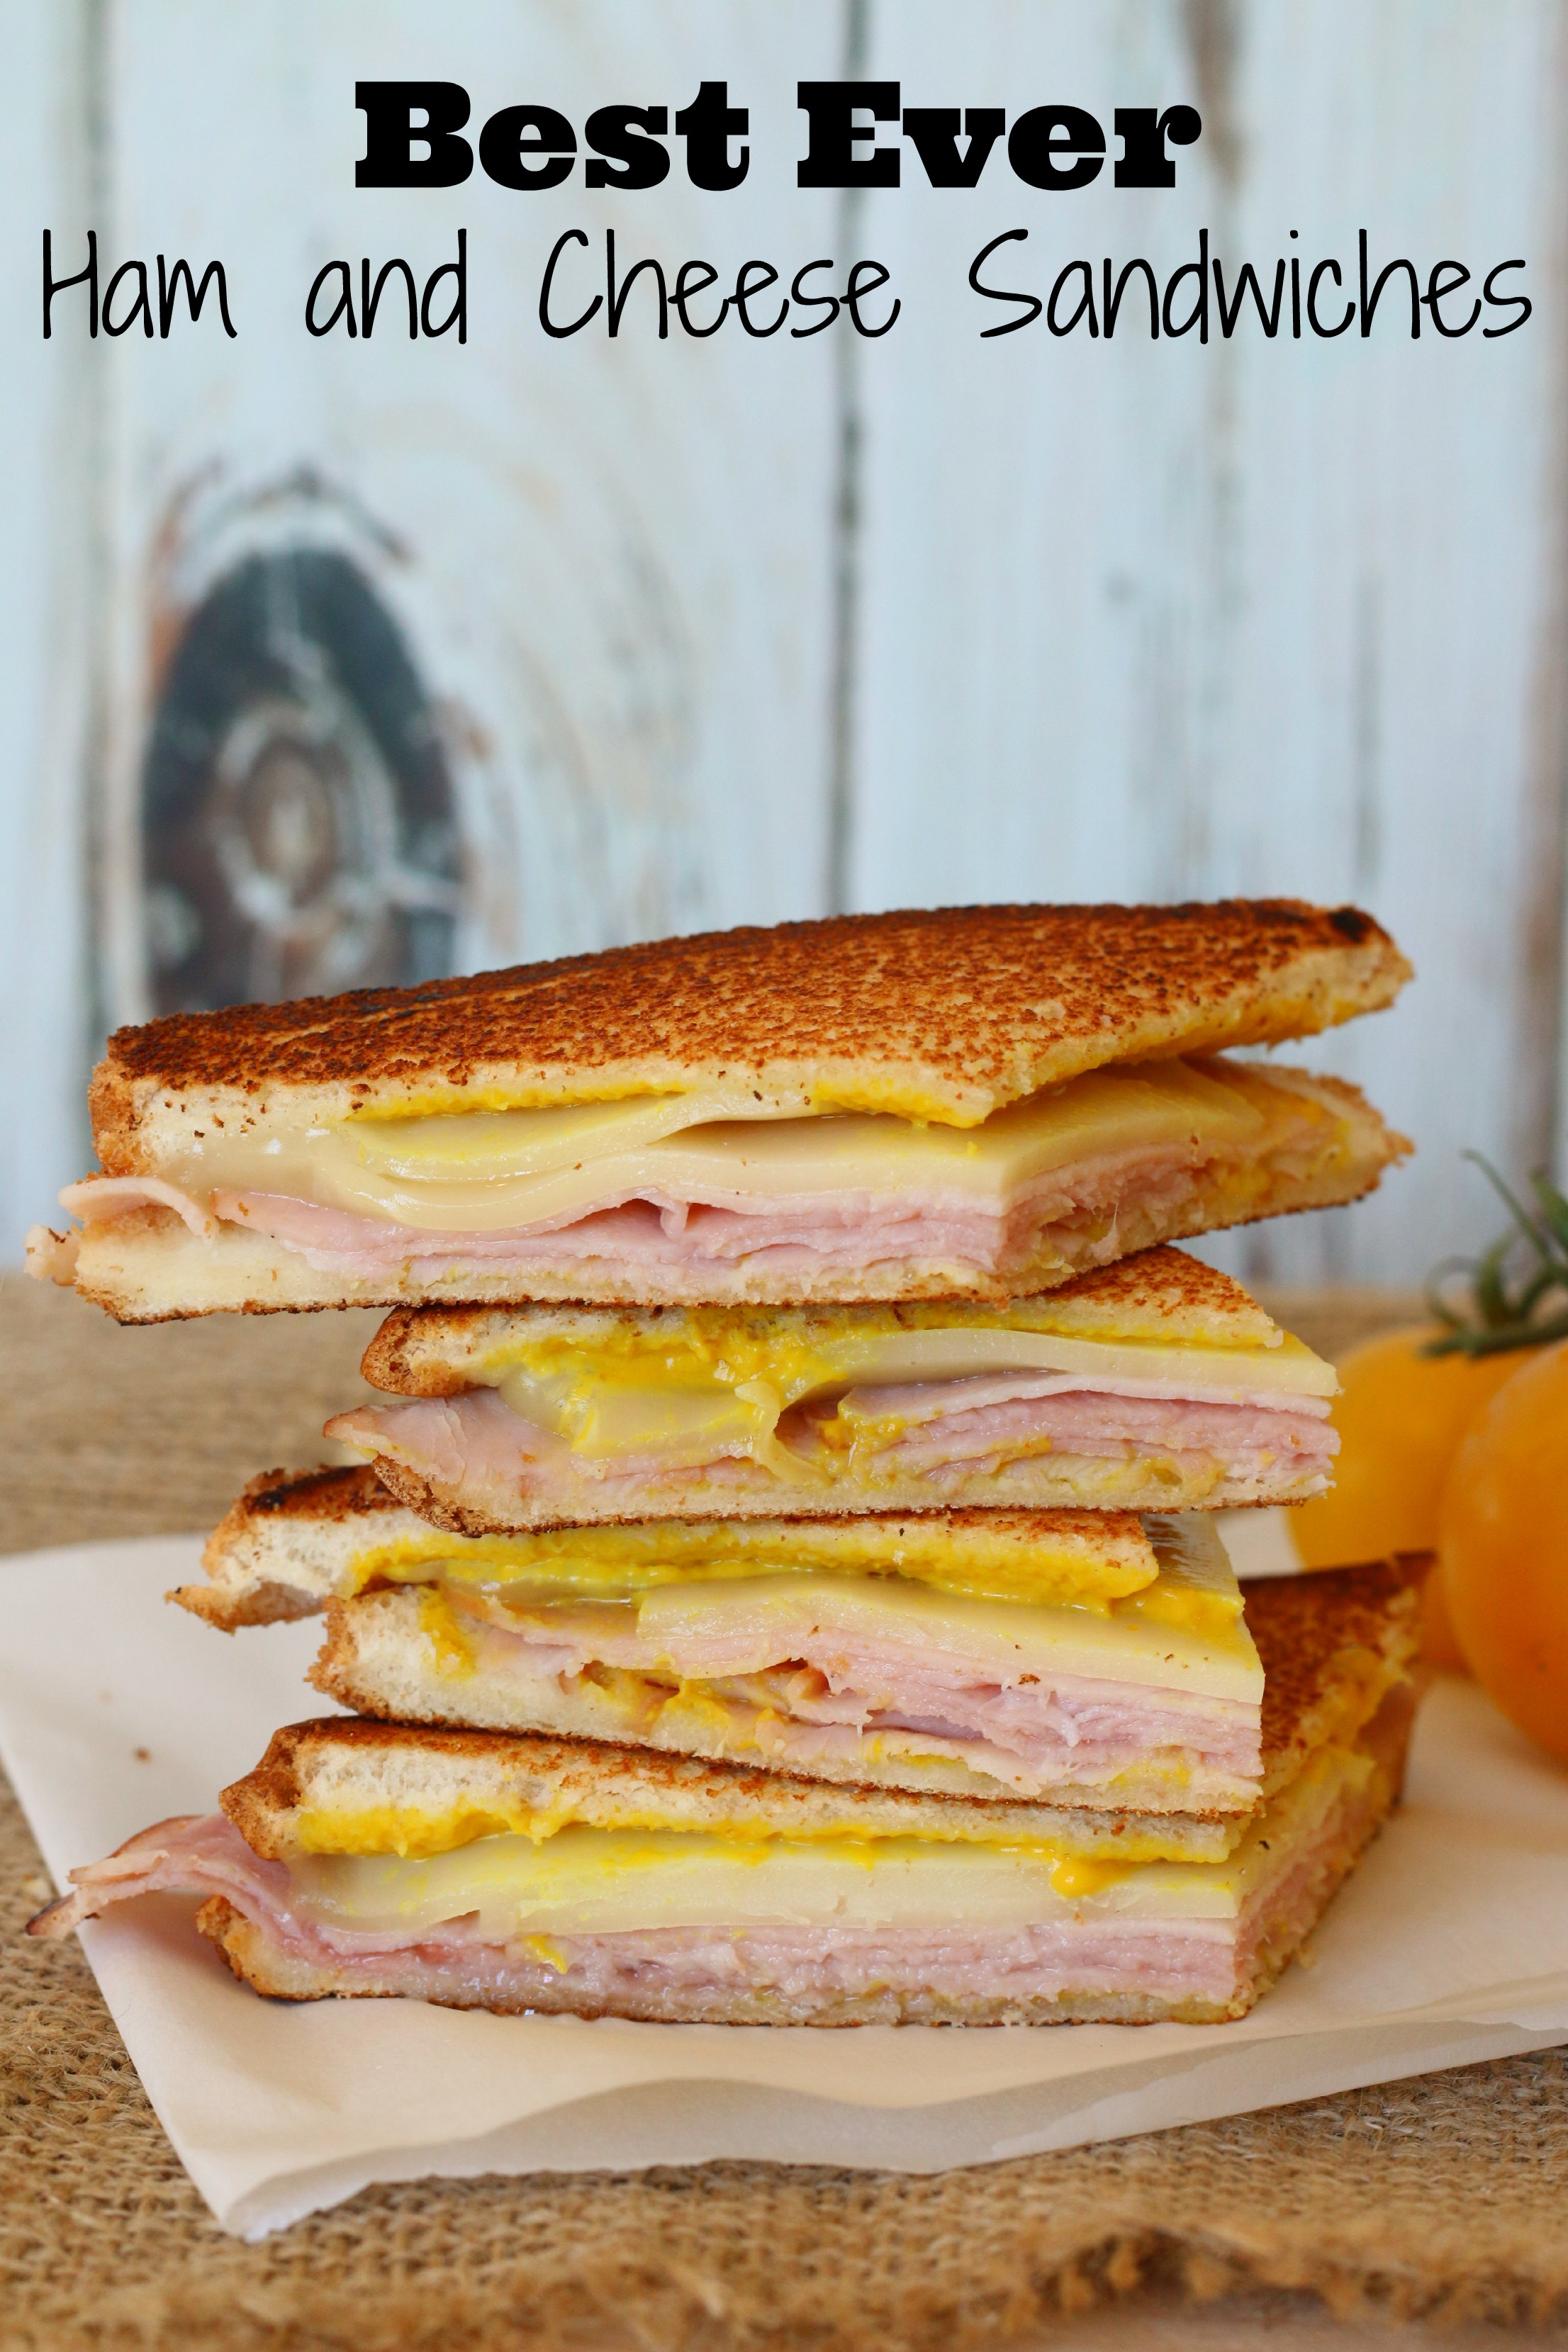 ... Fitness, Food & Lifestyle Blog | Best Ever Ham and Cheese Sandwiches